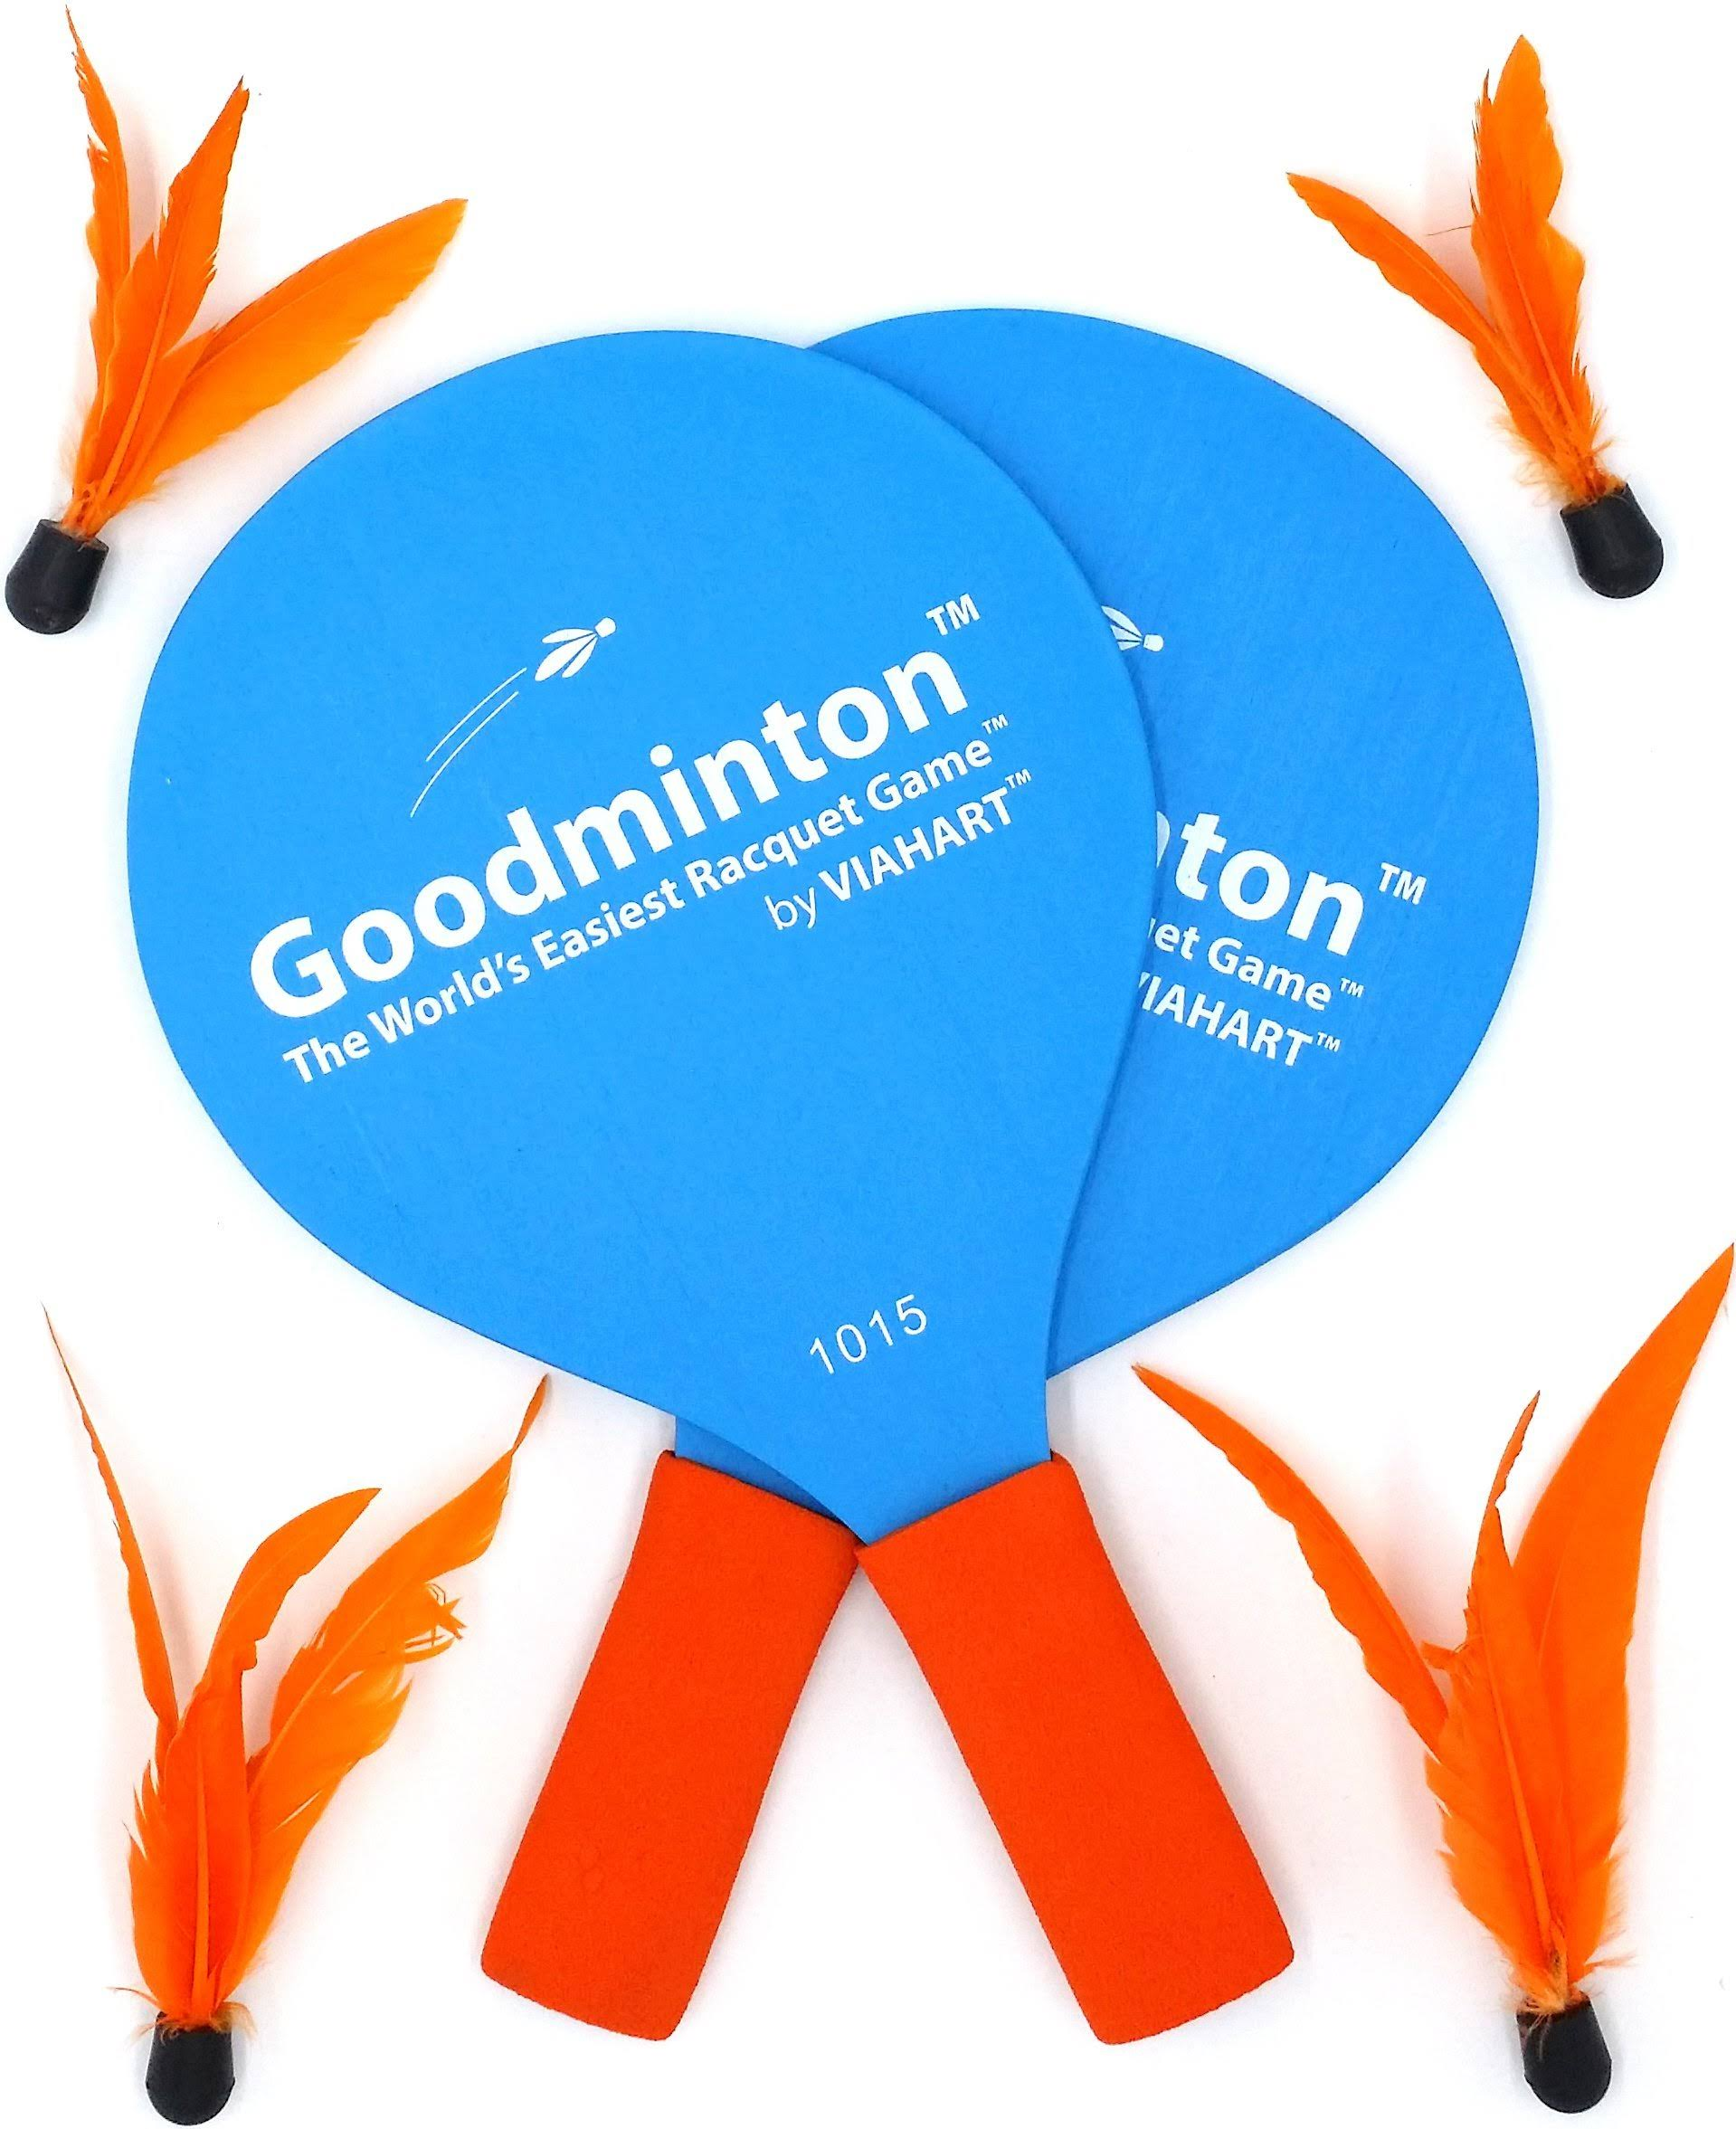 Goodminton Complete Sets: The Worlds Easiest Racket Game